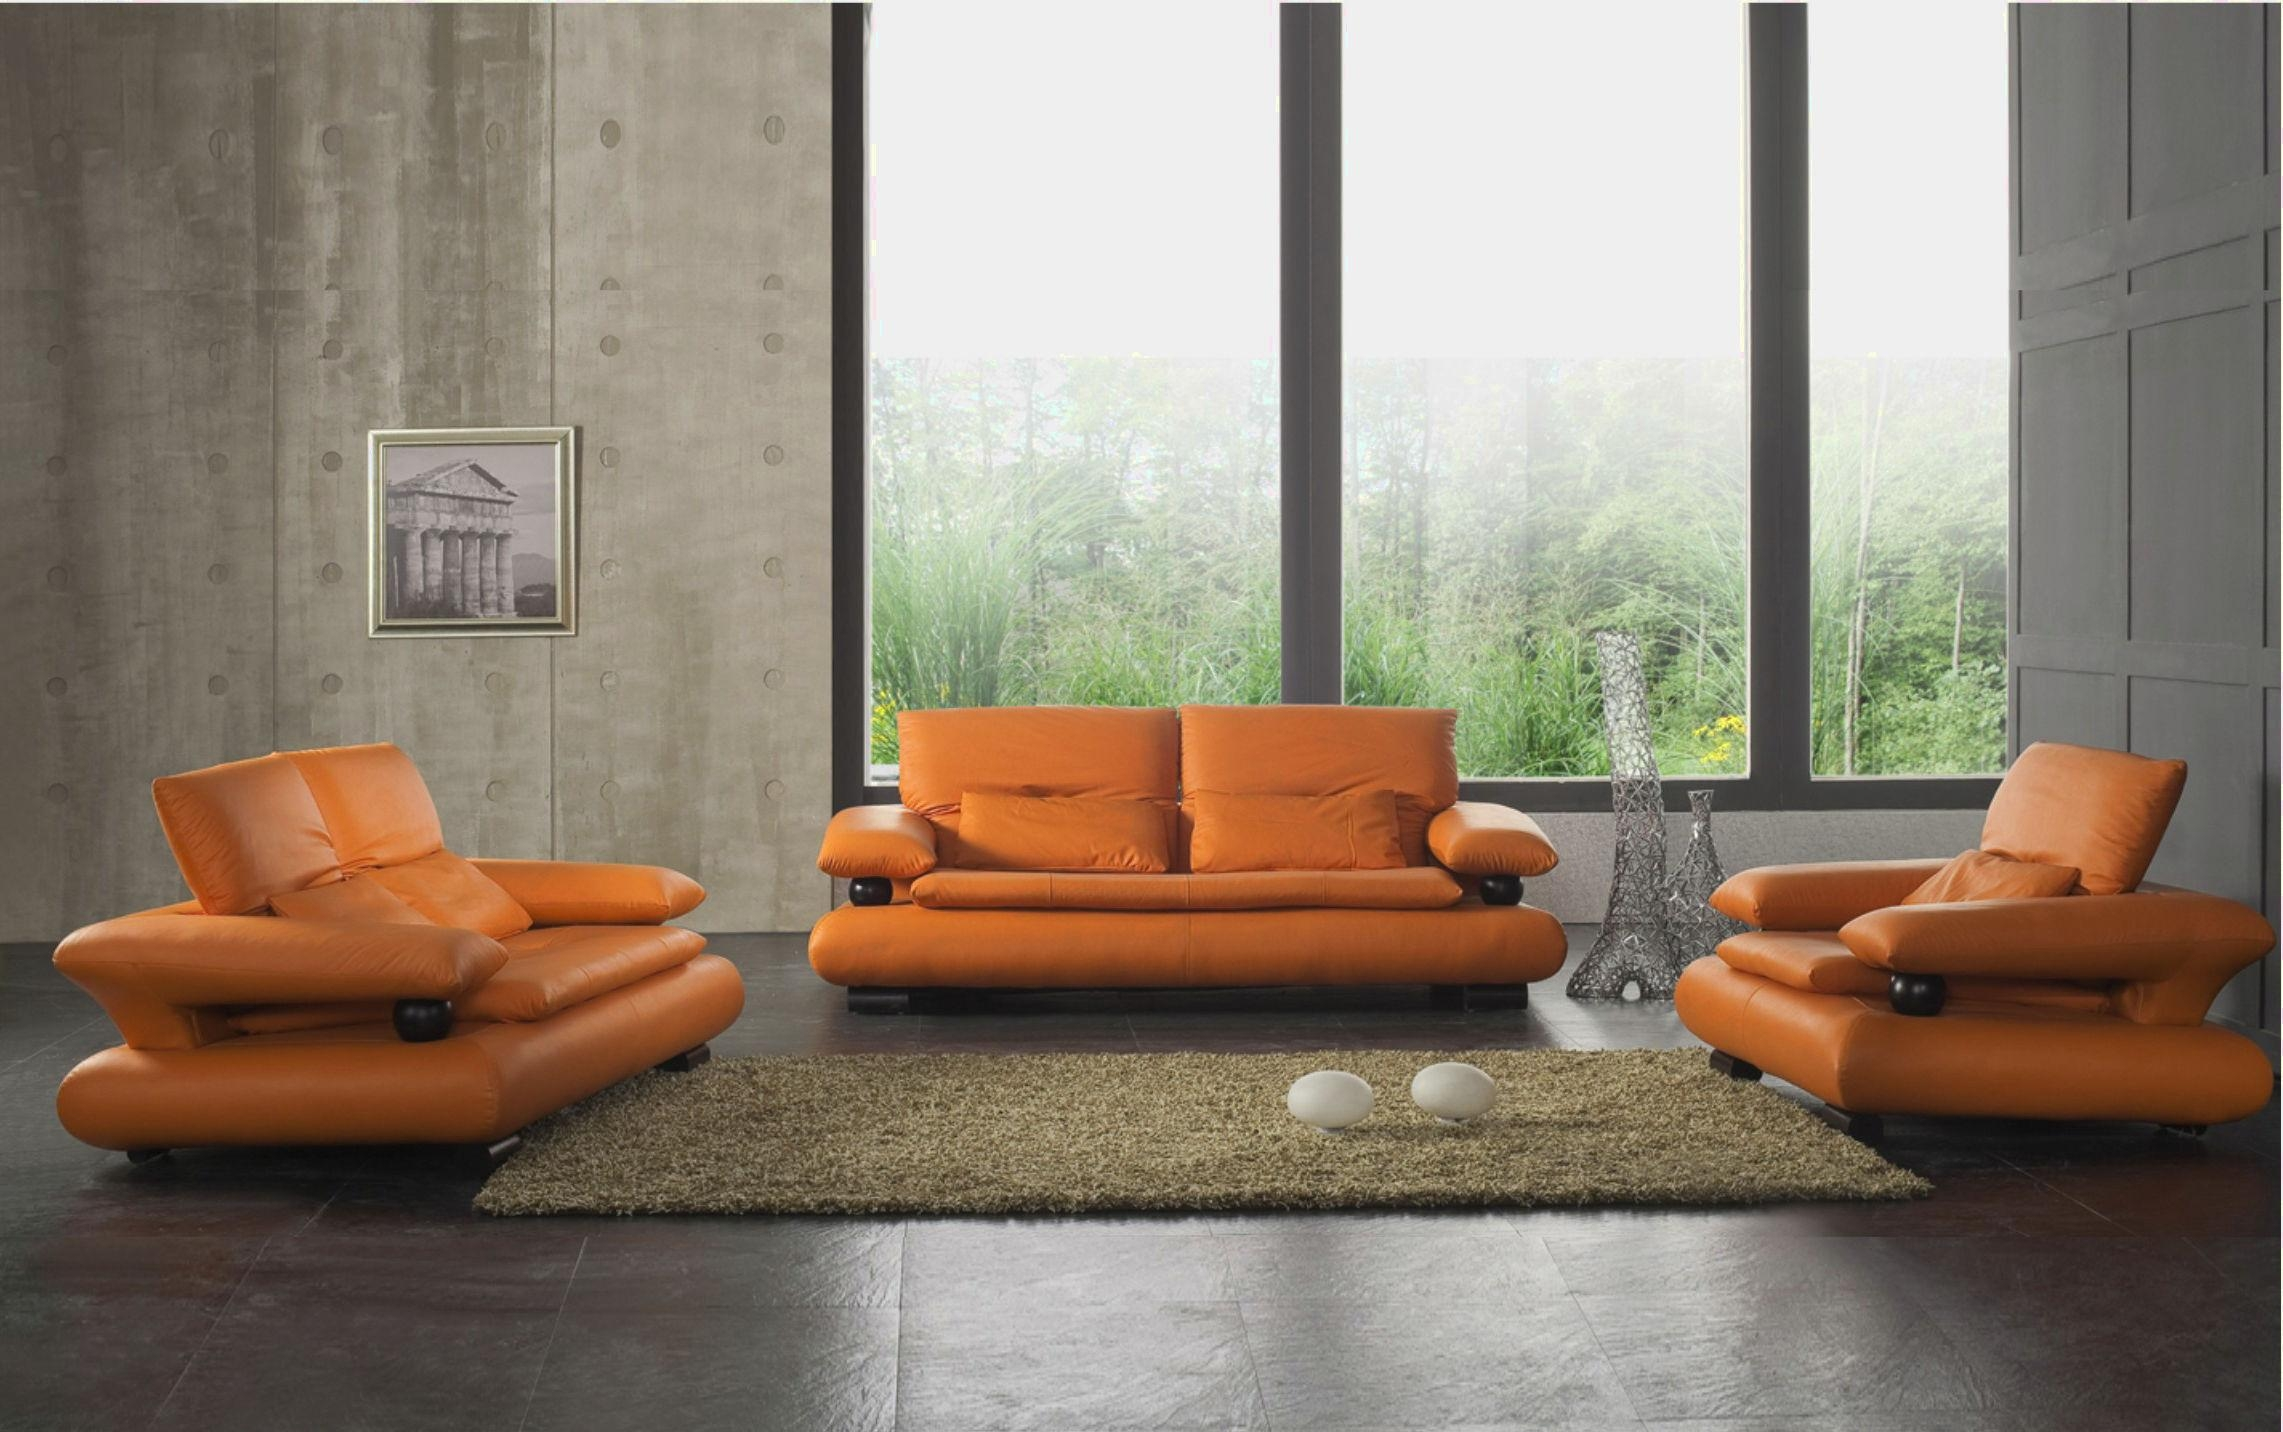 Stunning Orange Living Room Furniture Ideas – Home Design Ideas With Regard To Orange Modern Sofas (Photo 9 of 20)